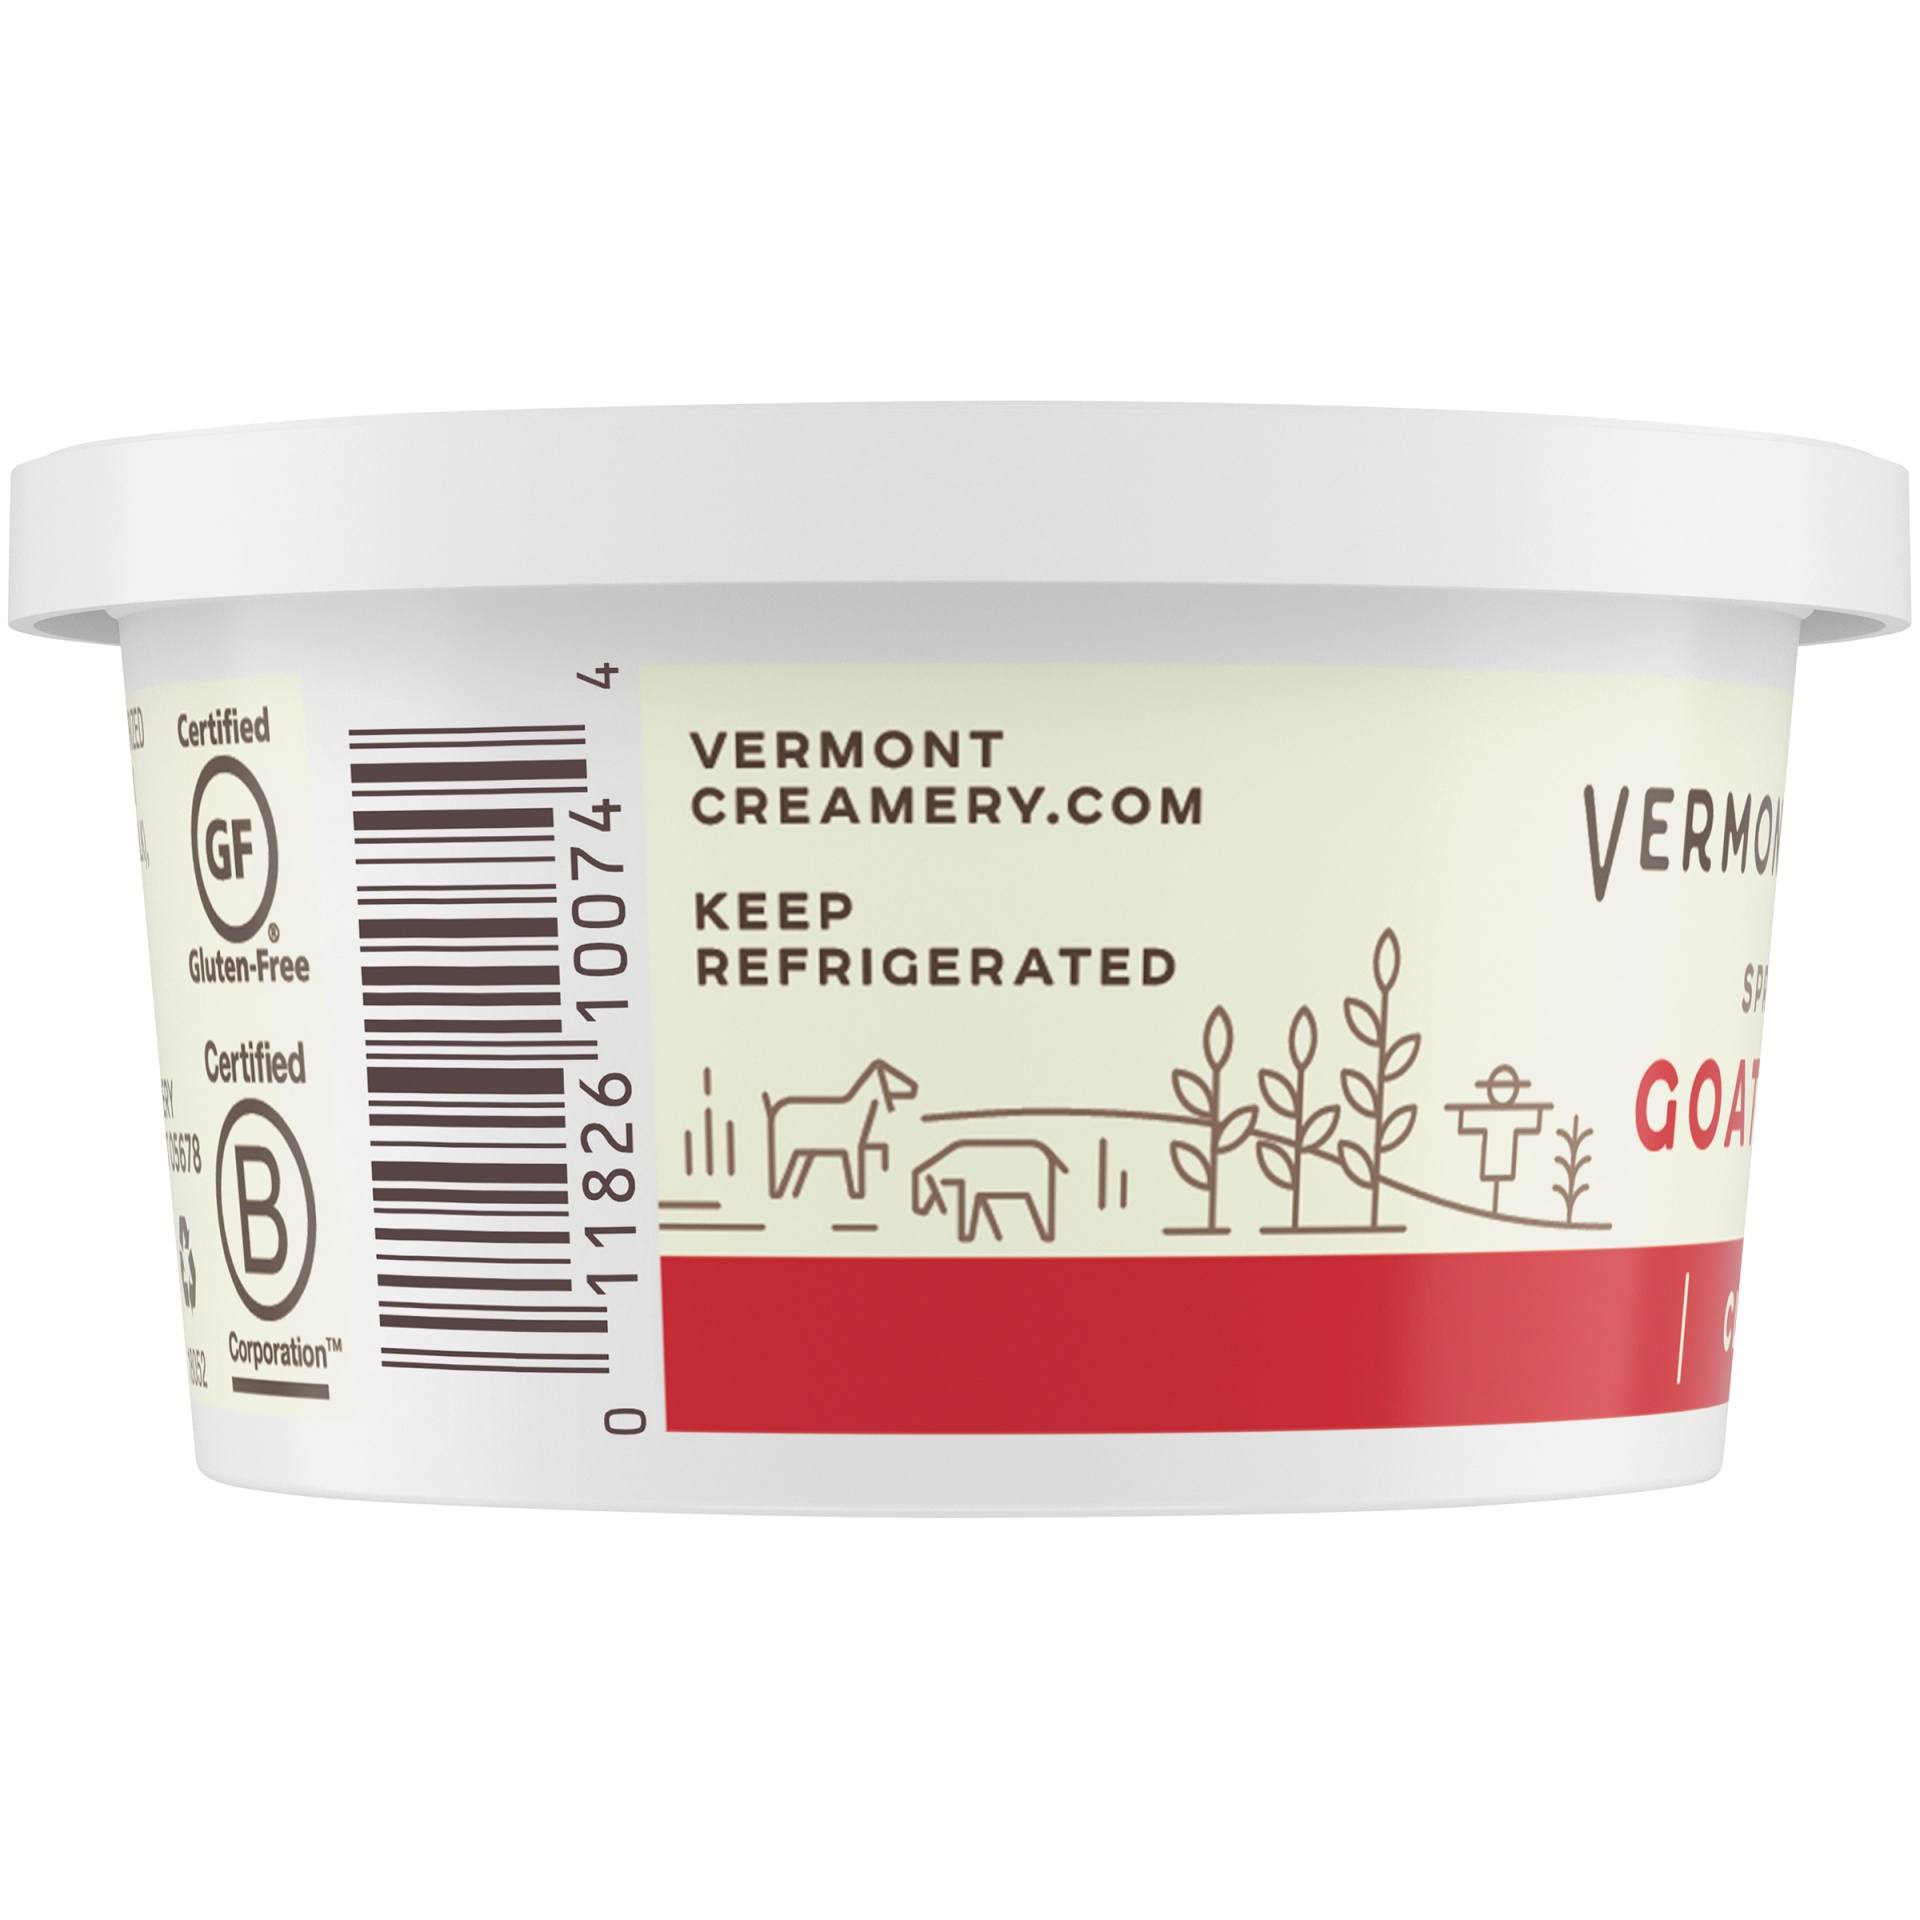 slide 5 of 8, Vermont Creamy Spreadable Goat Cheese,